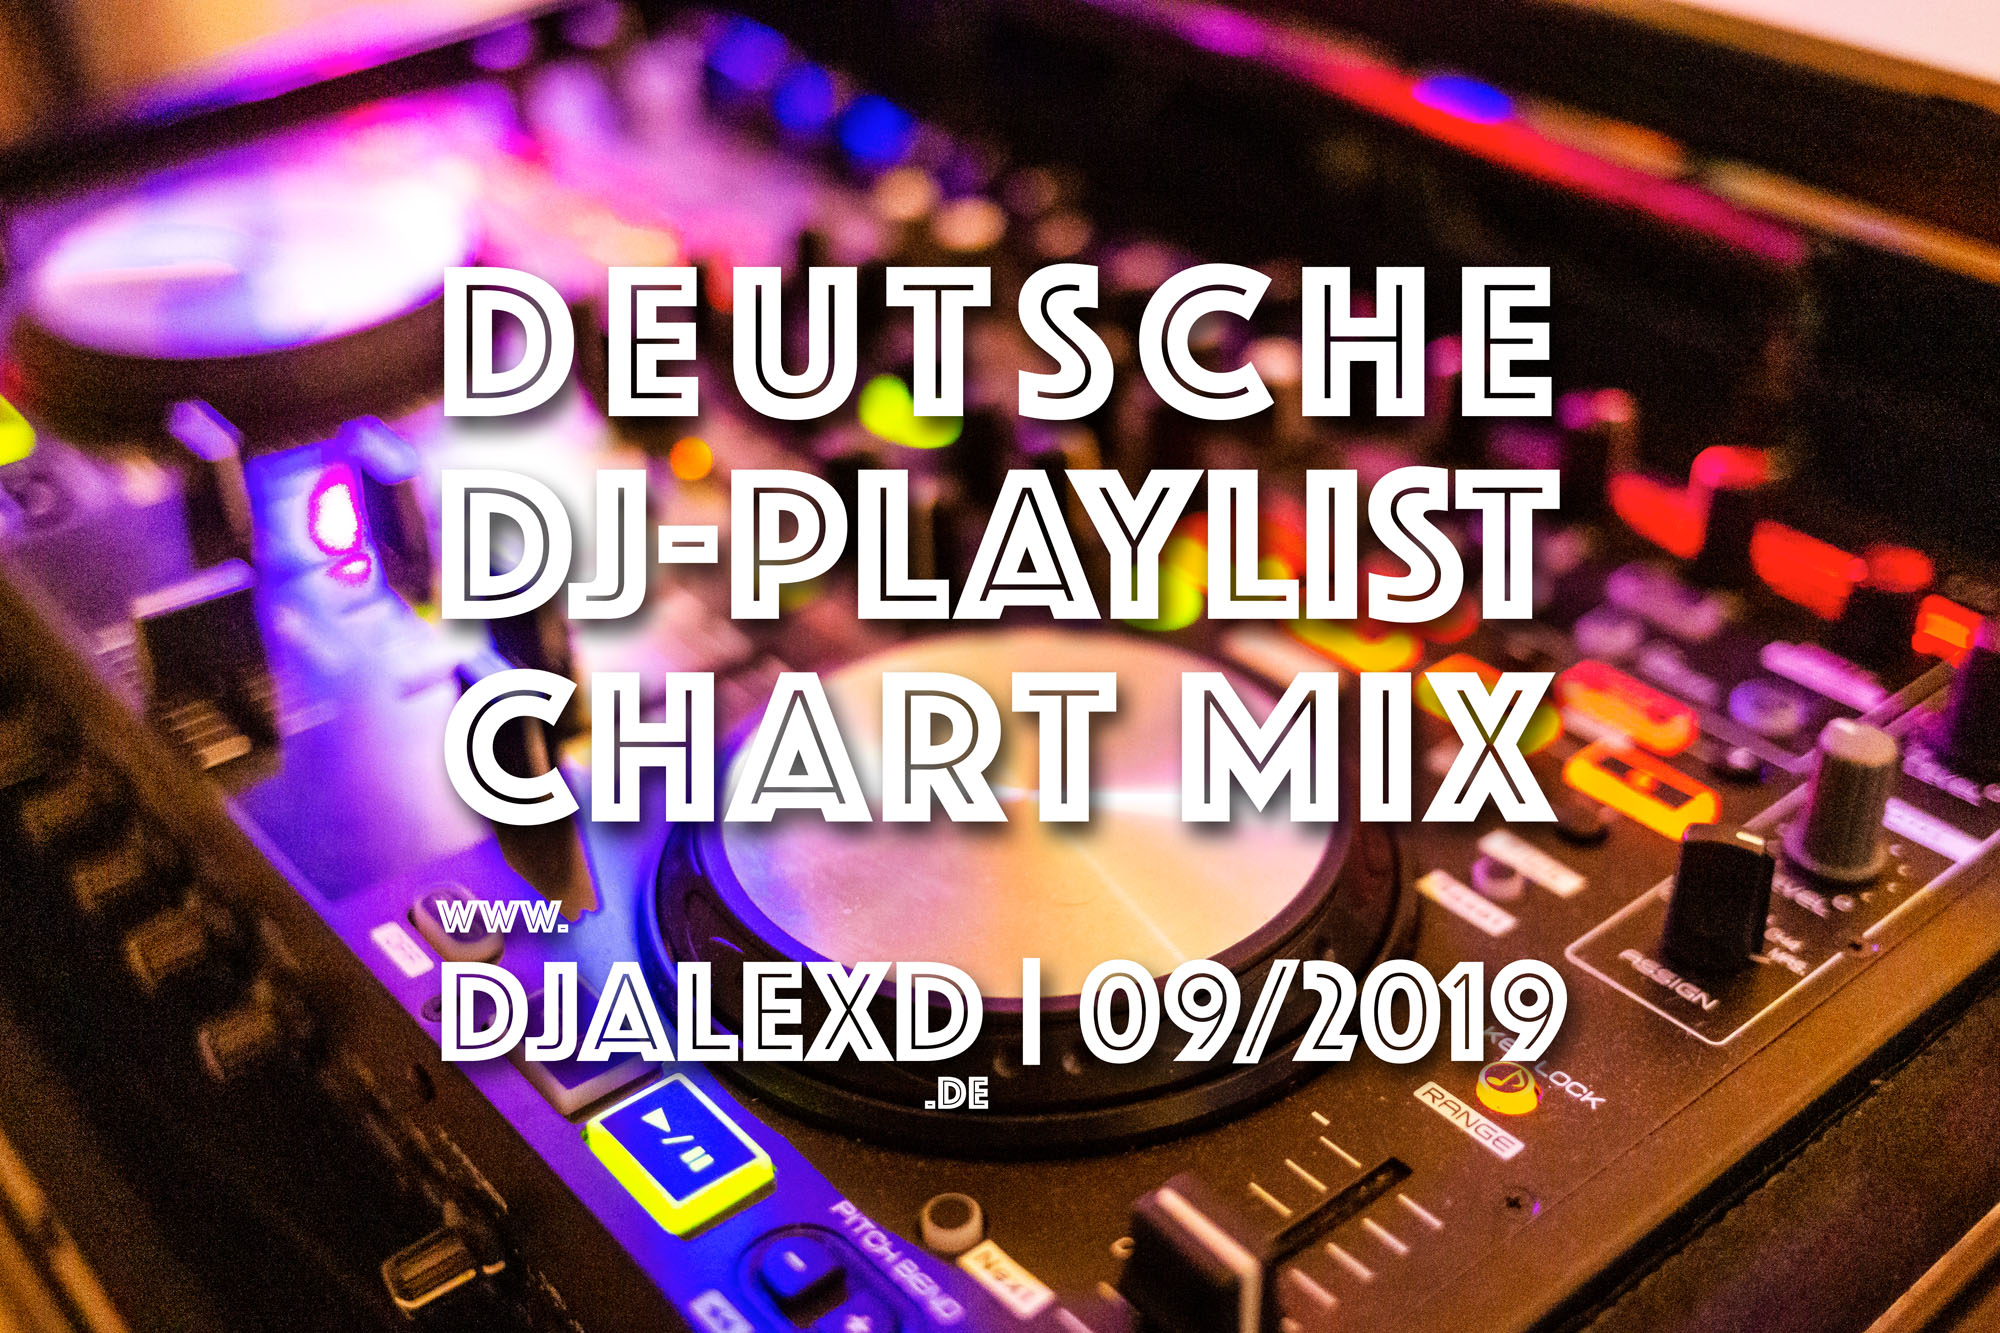 Deutsche DJ Playlist Chart Mix 9/2019